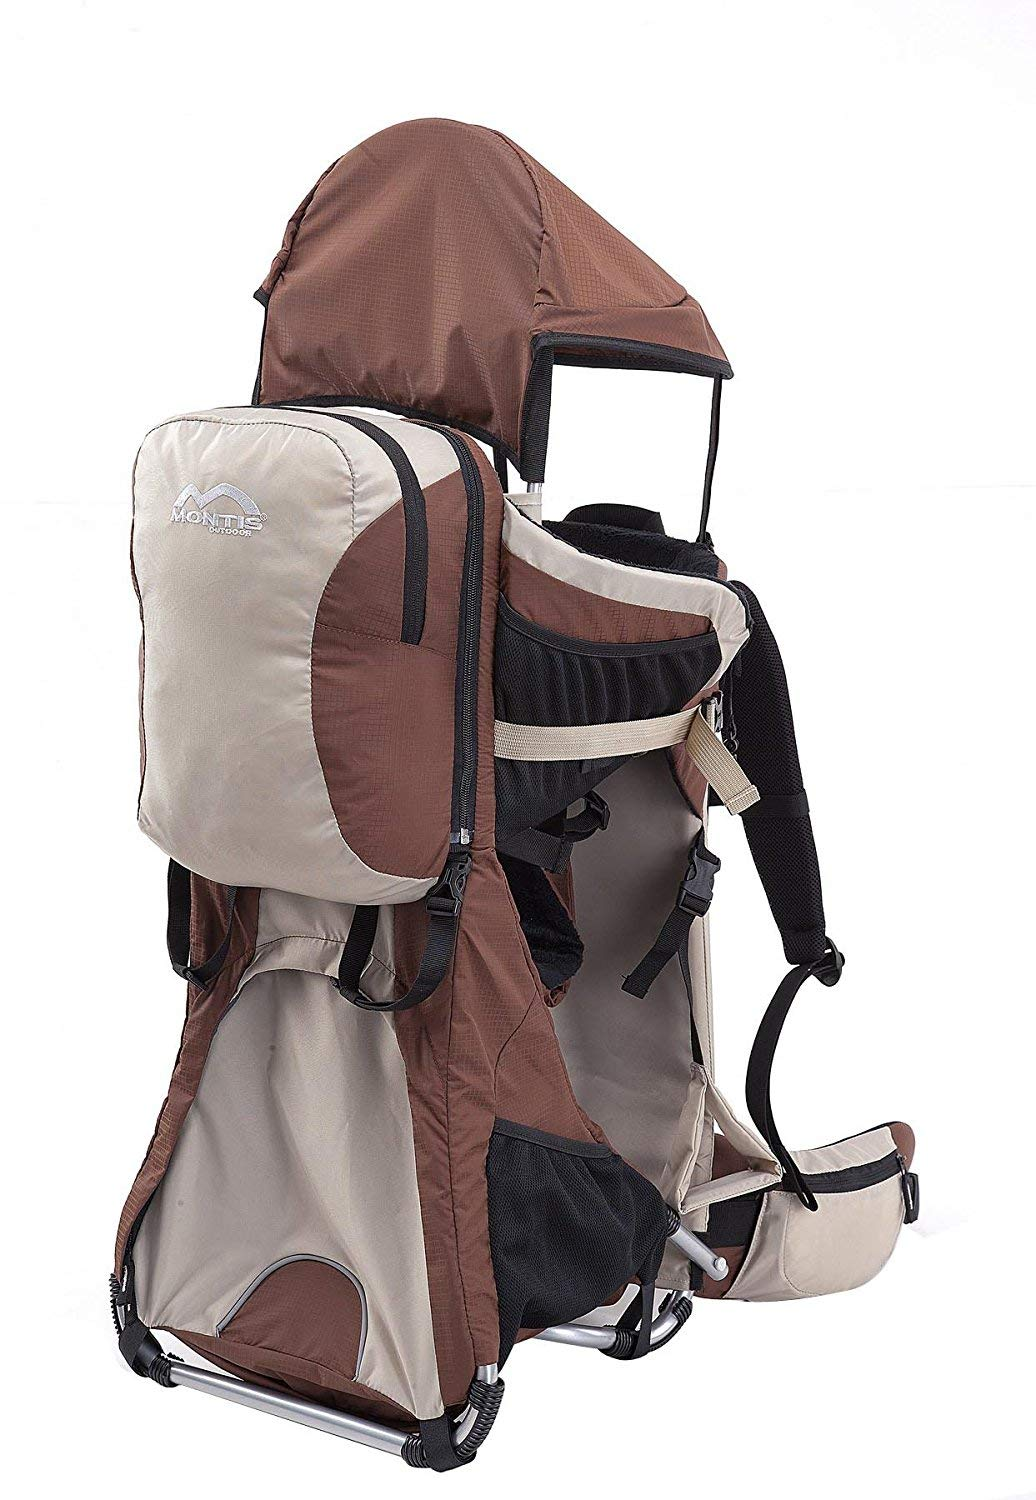 MONTIS RANGER PRO - Premium Backpack/Child Carrier - Holds up to 25kg M MONTIS OUTDOOR  2